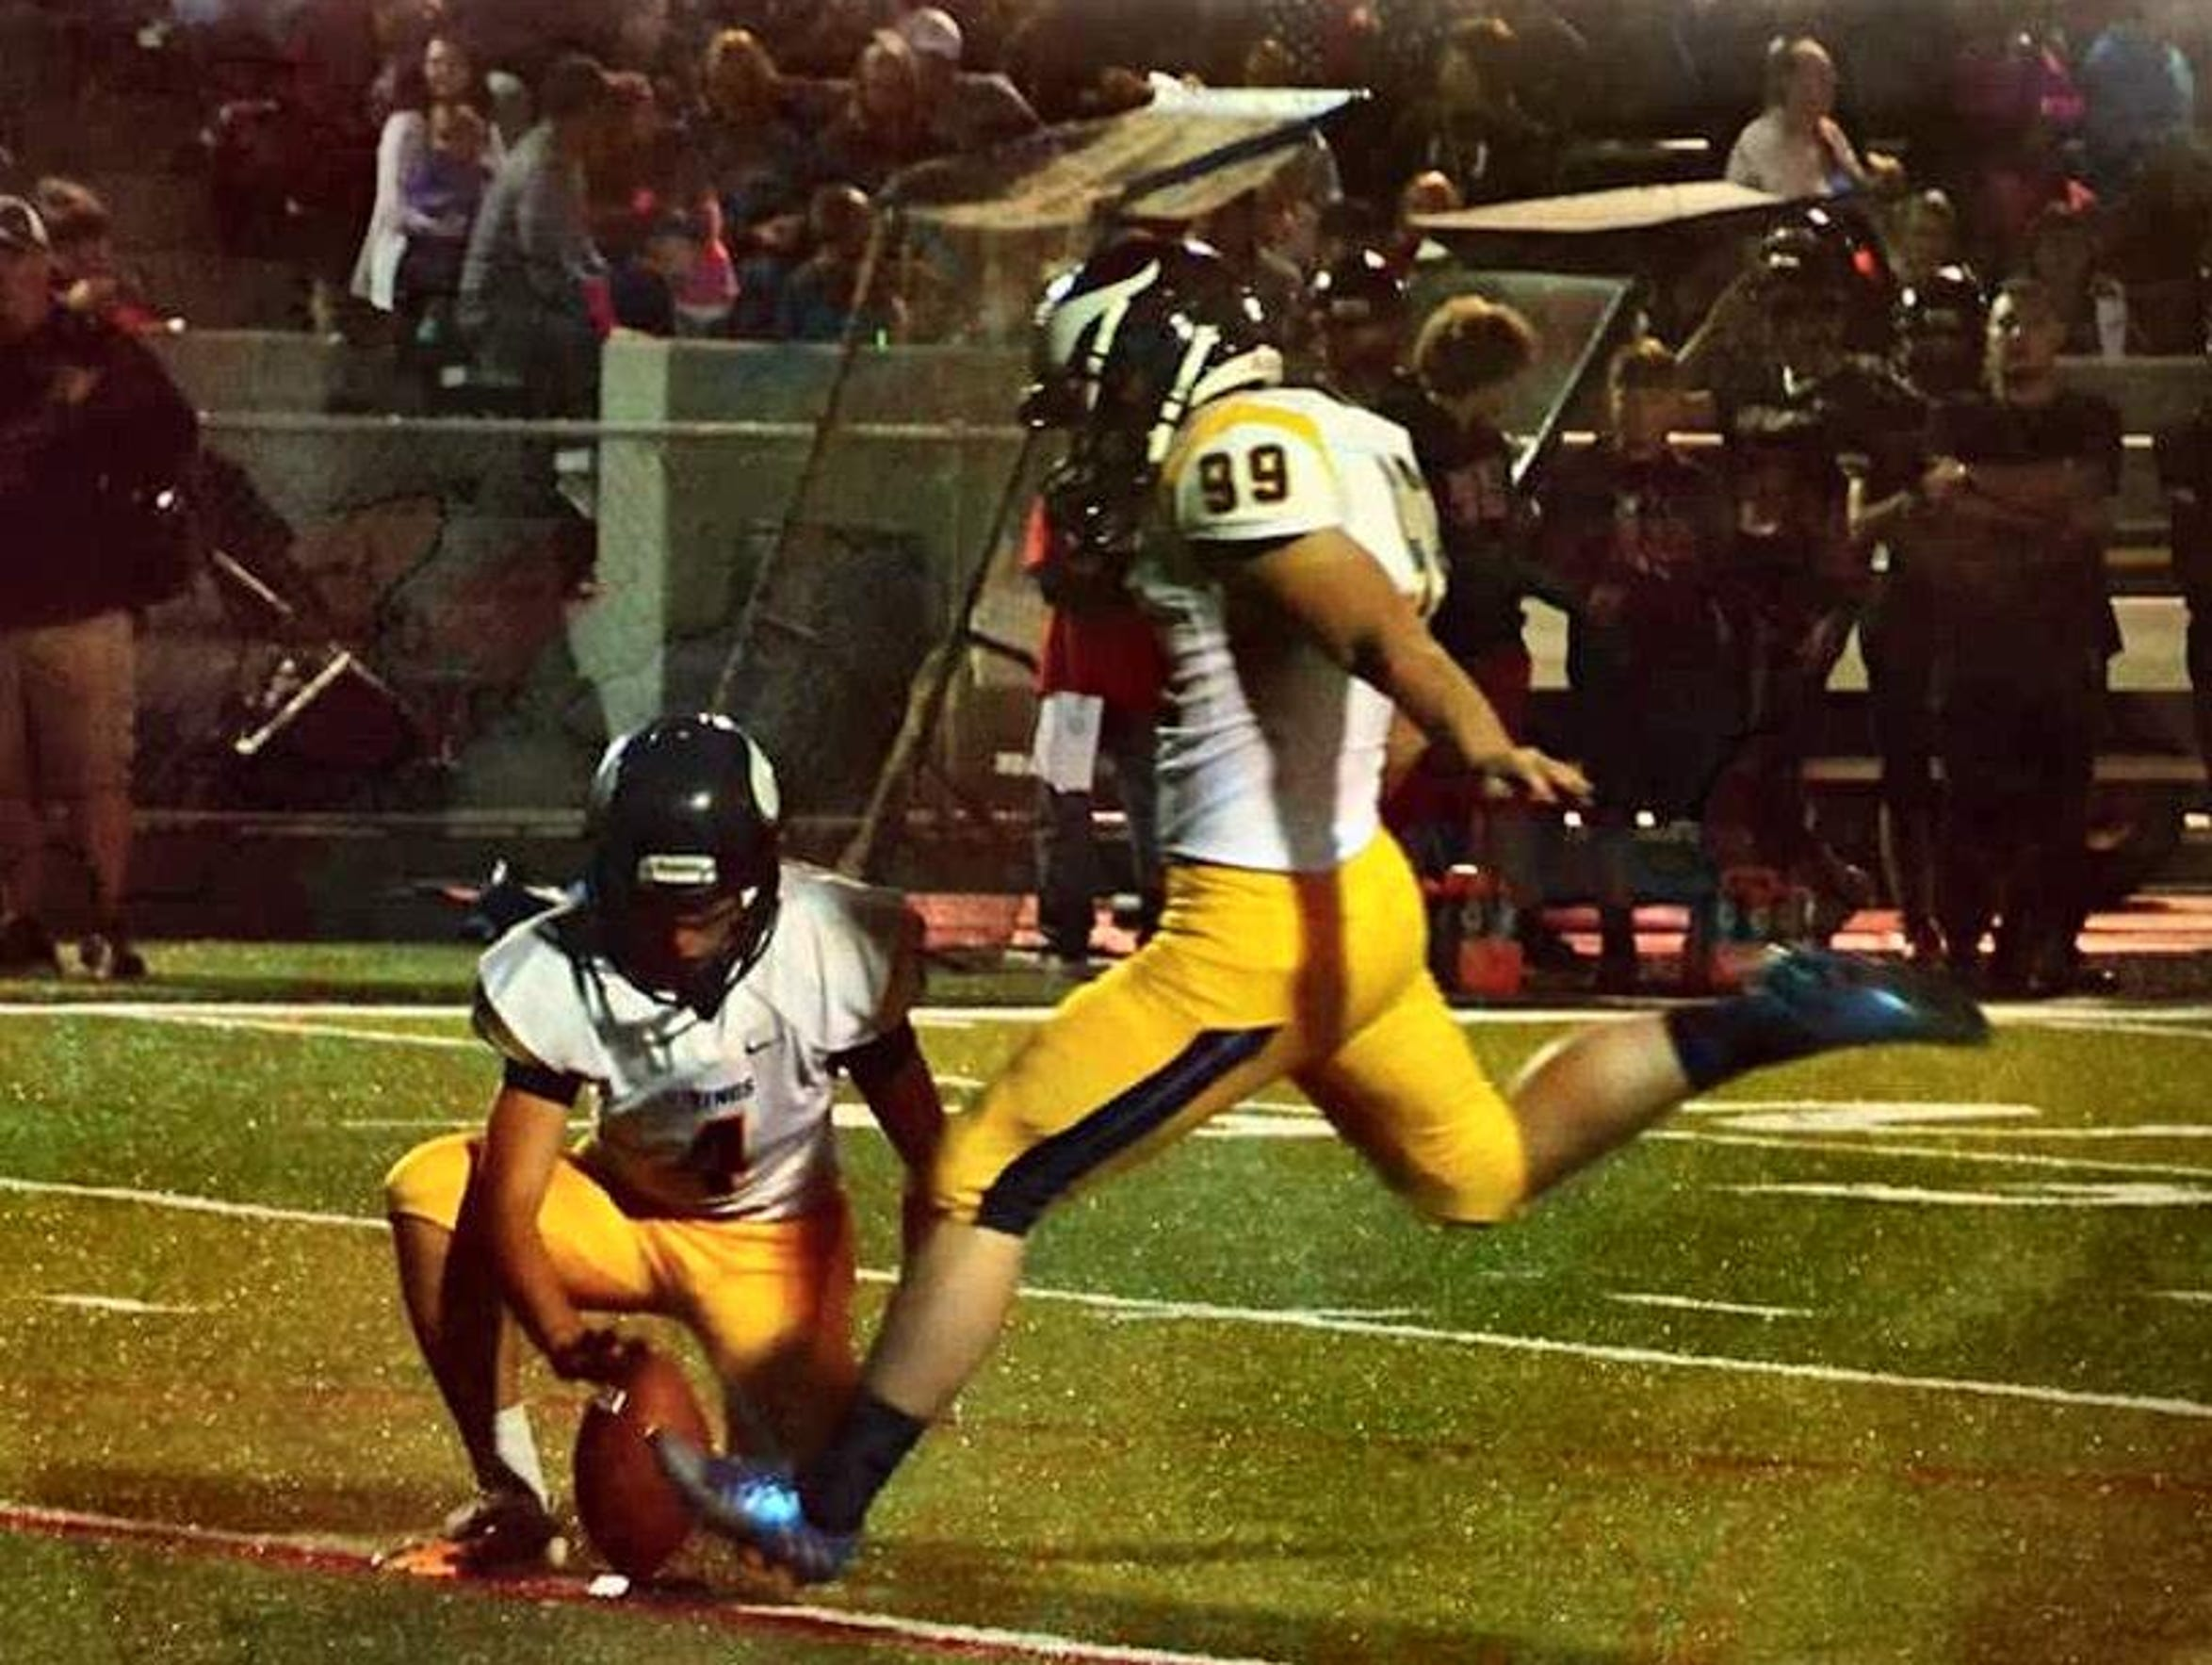 River Valley's Carter Layton attempts a kick during